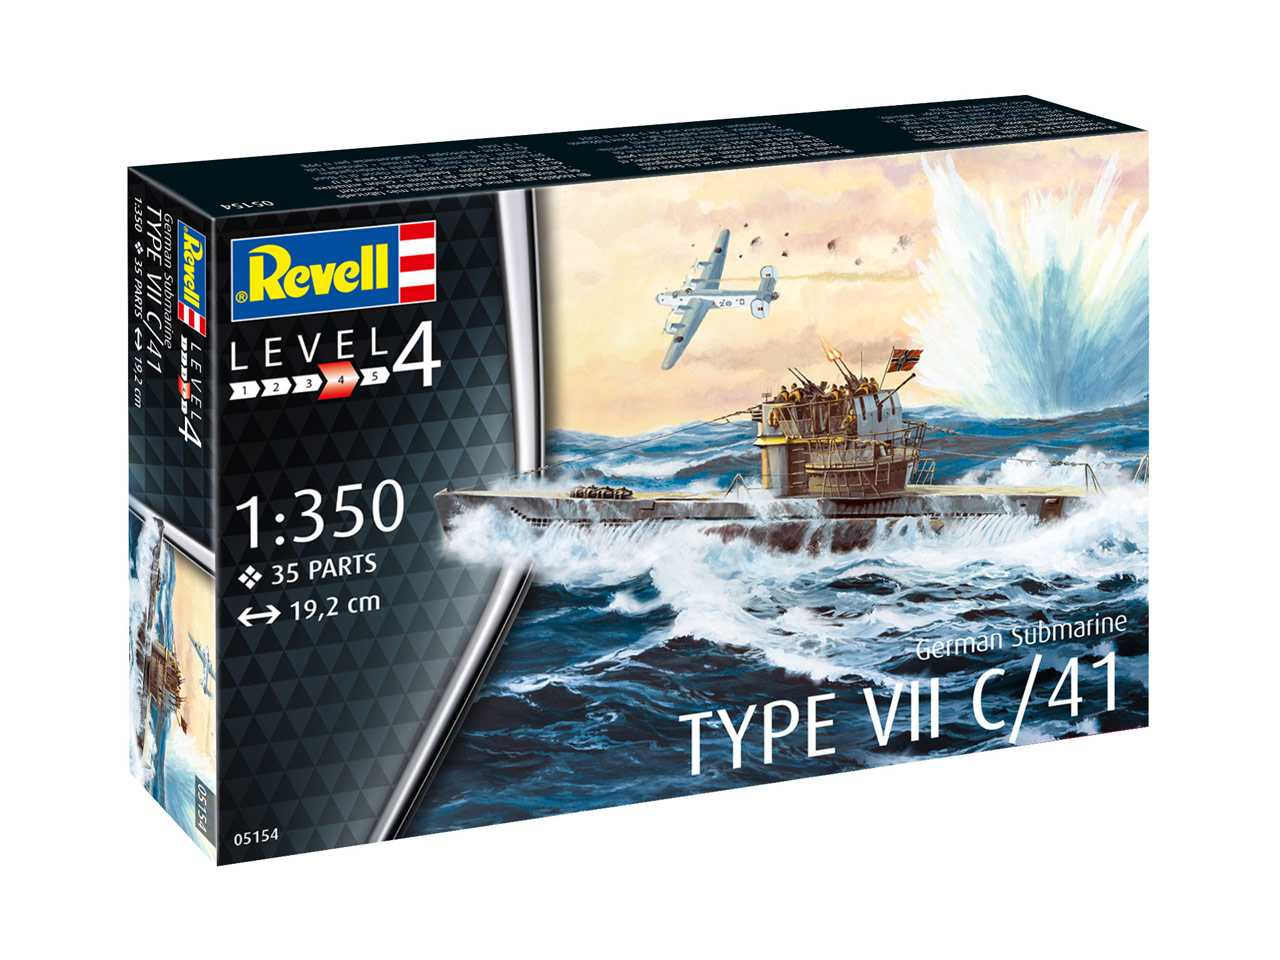 1:350 German Submarine Type VII C/41